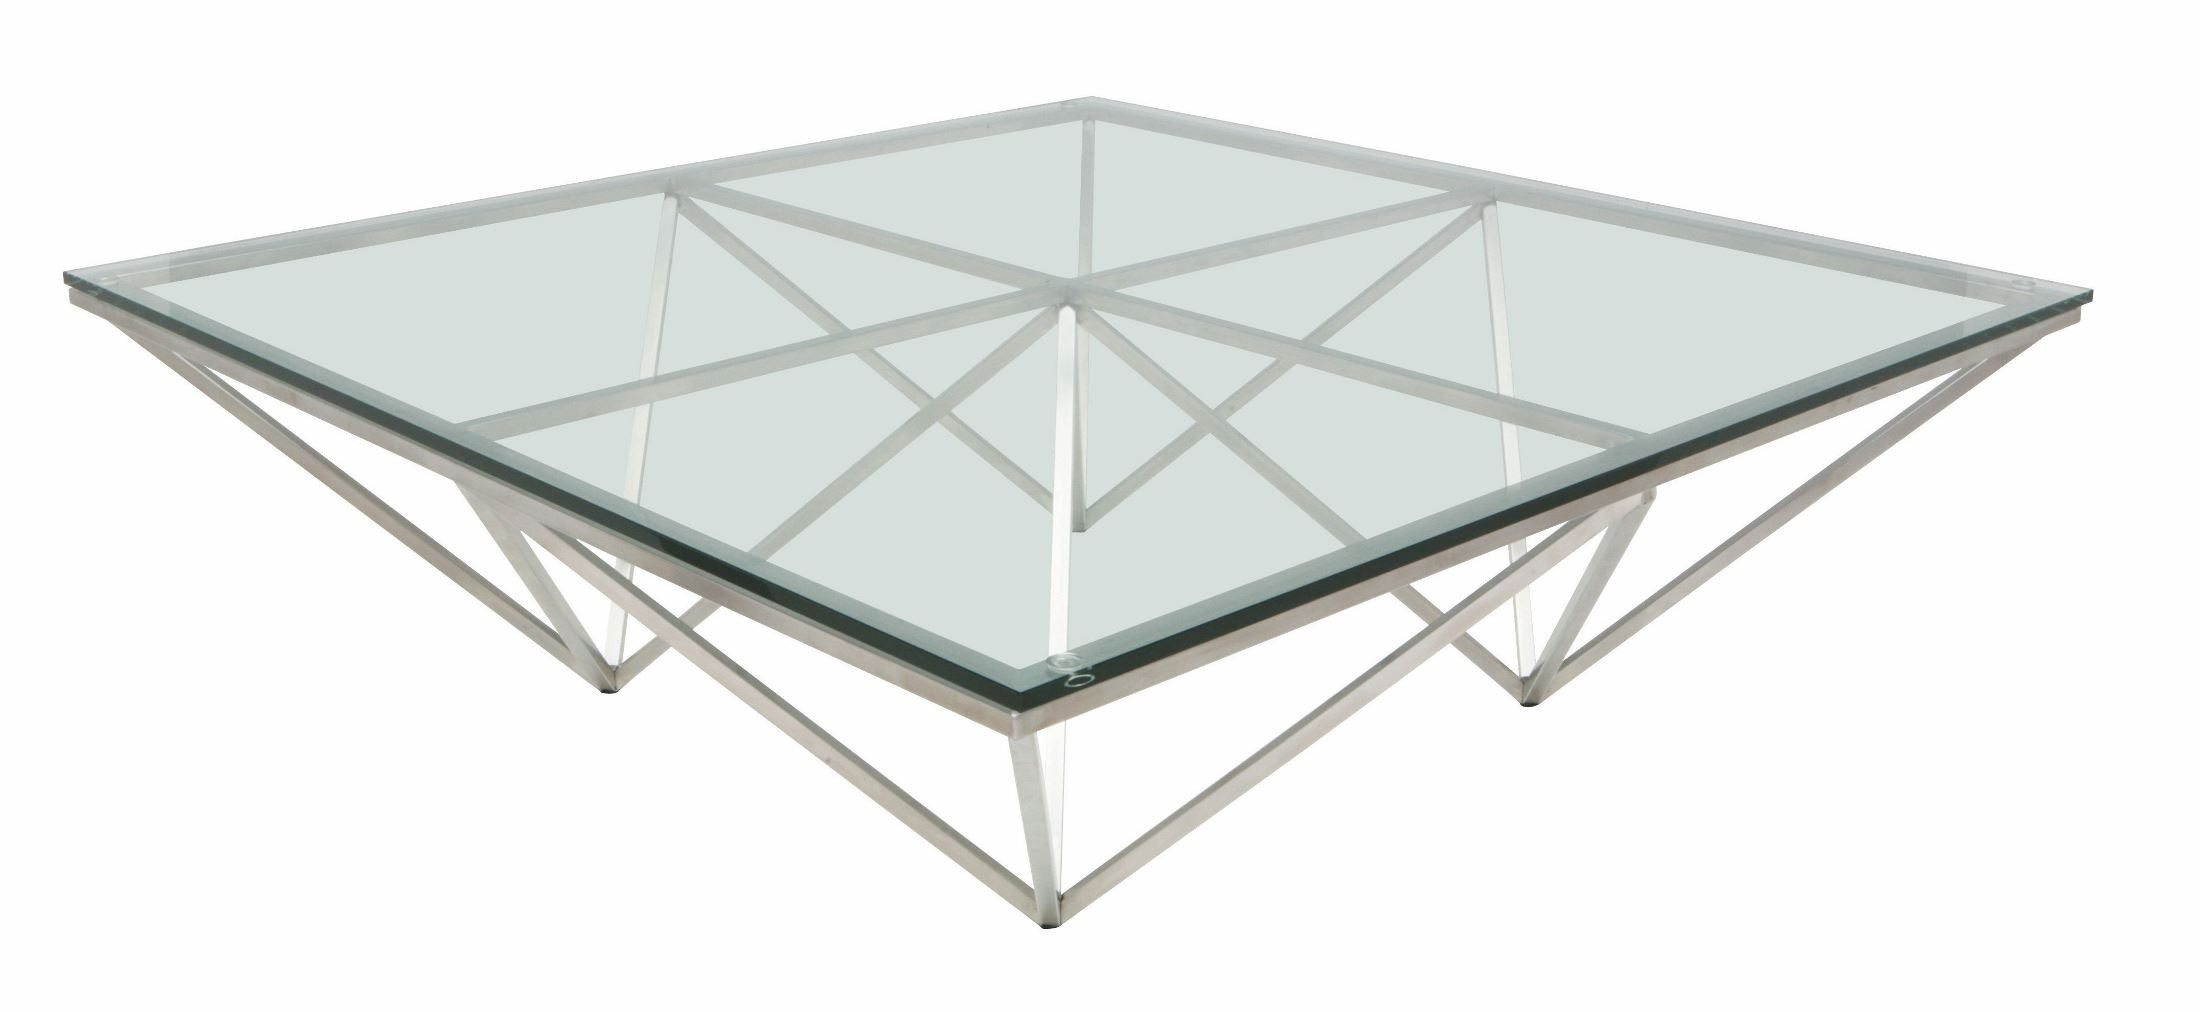 Origami Clear Glass Coffee Table From Nuevo Coleman Furniture